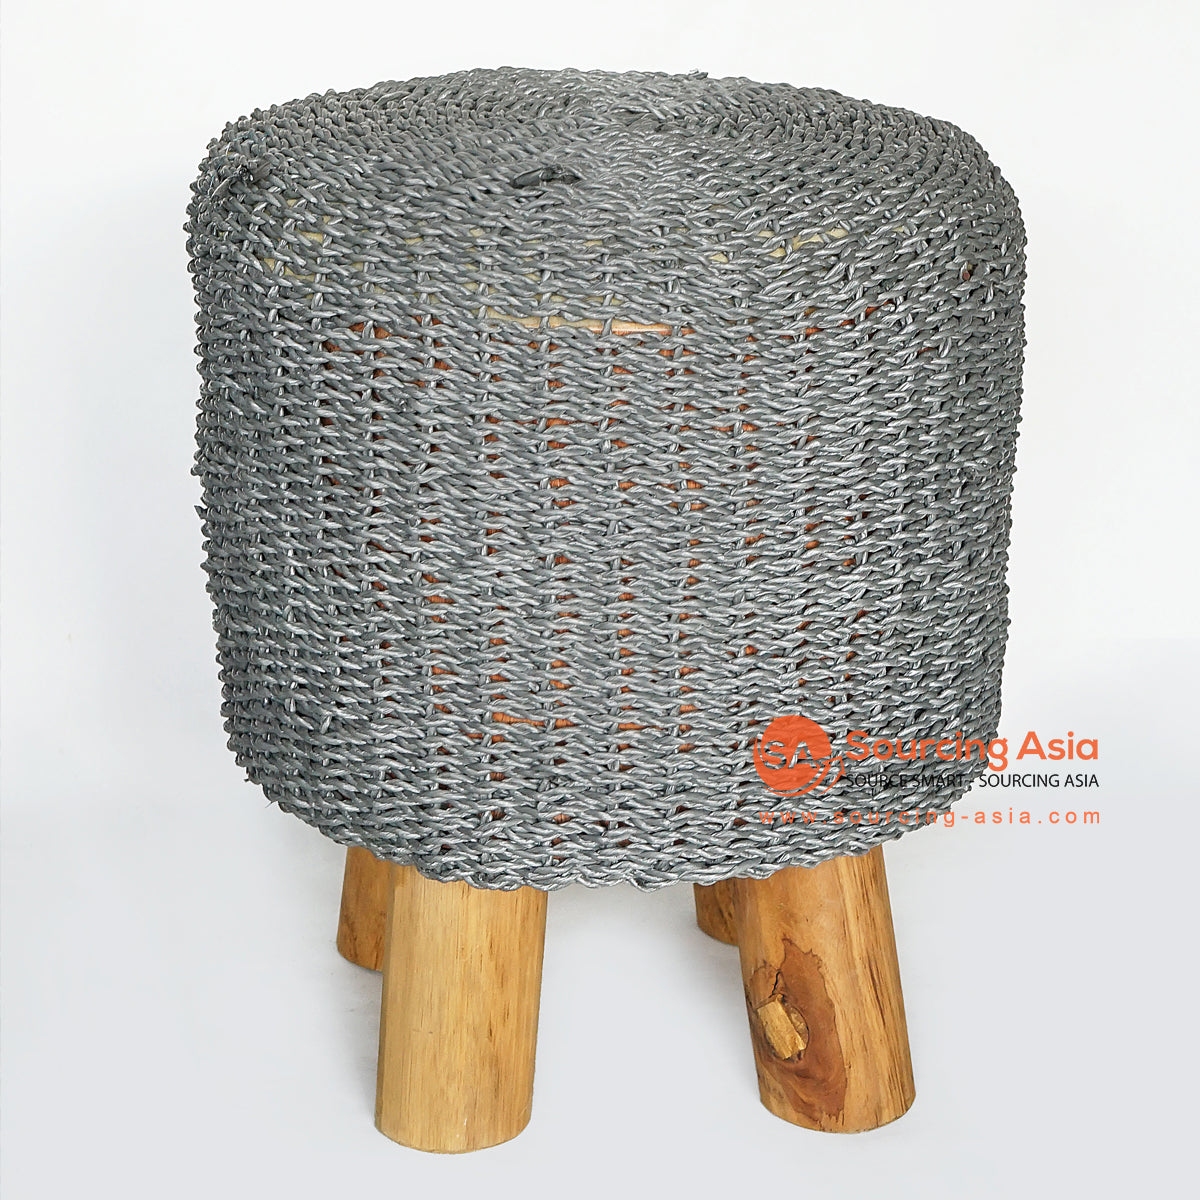 MRC163 NATURAL WOODEN ROUND STOOL WITH DARK GREY RAFFIA SEAT